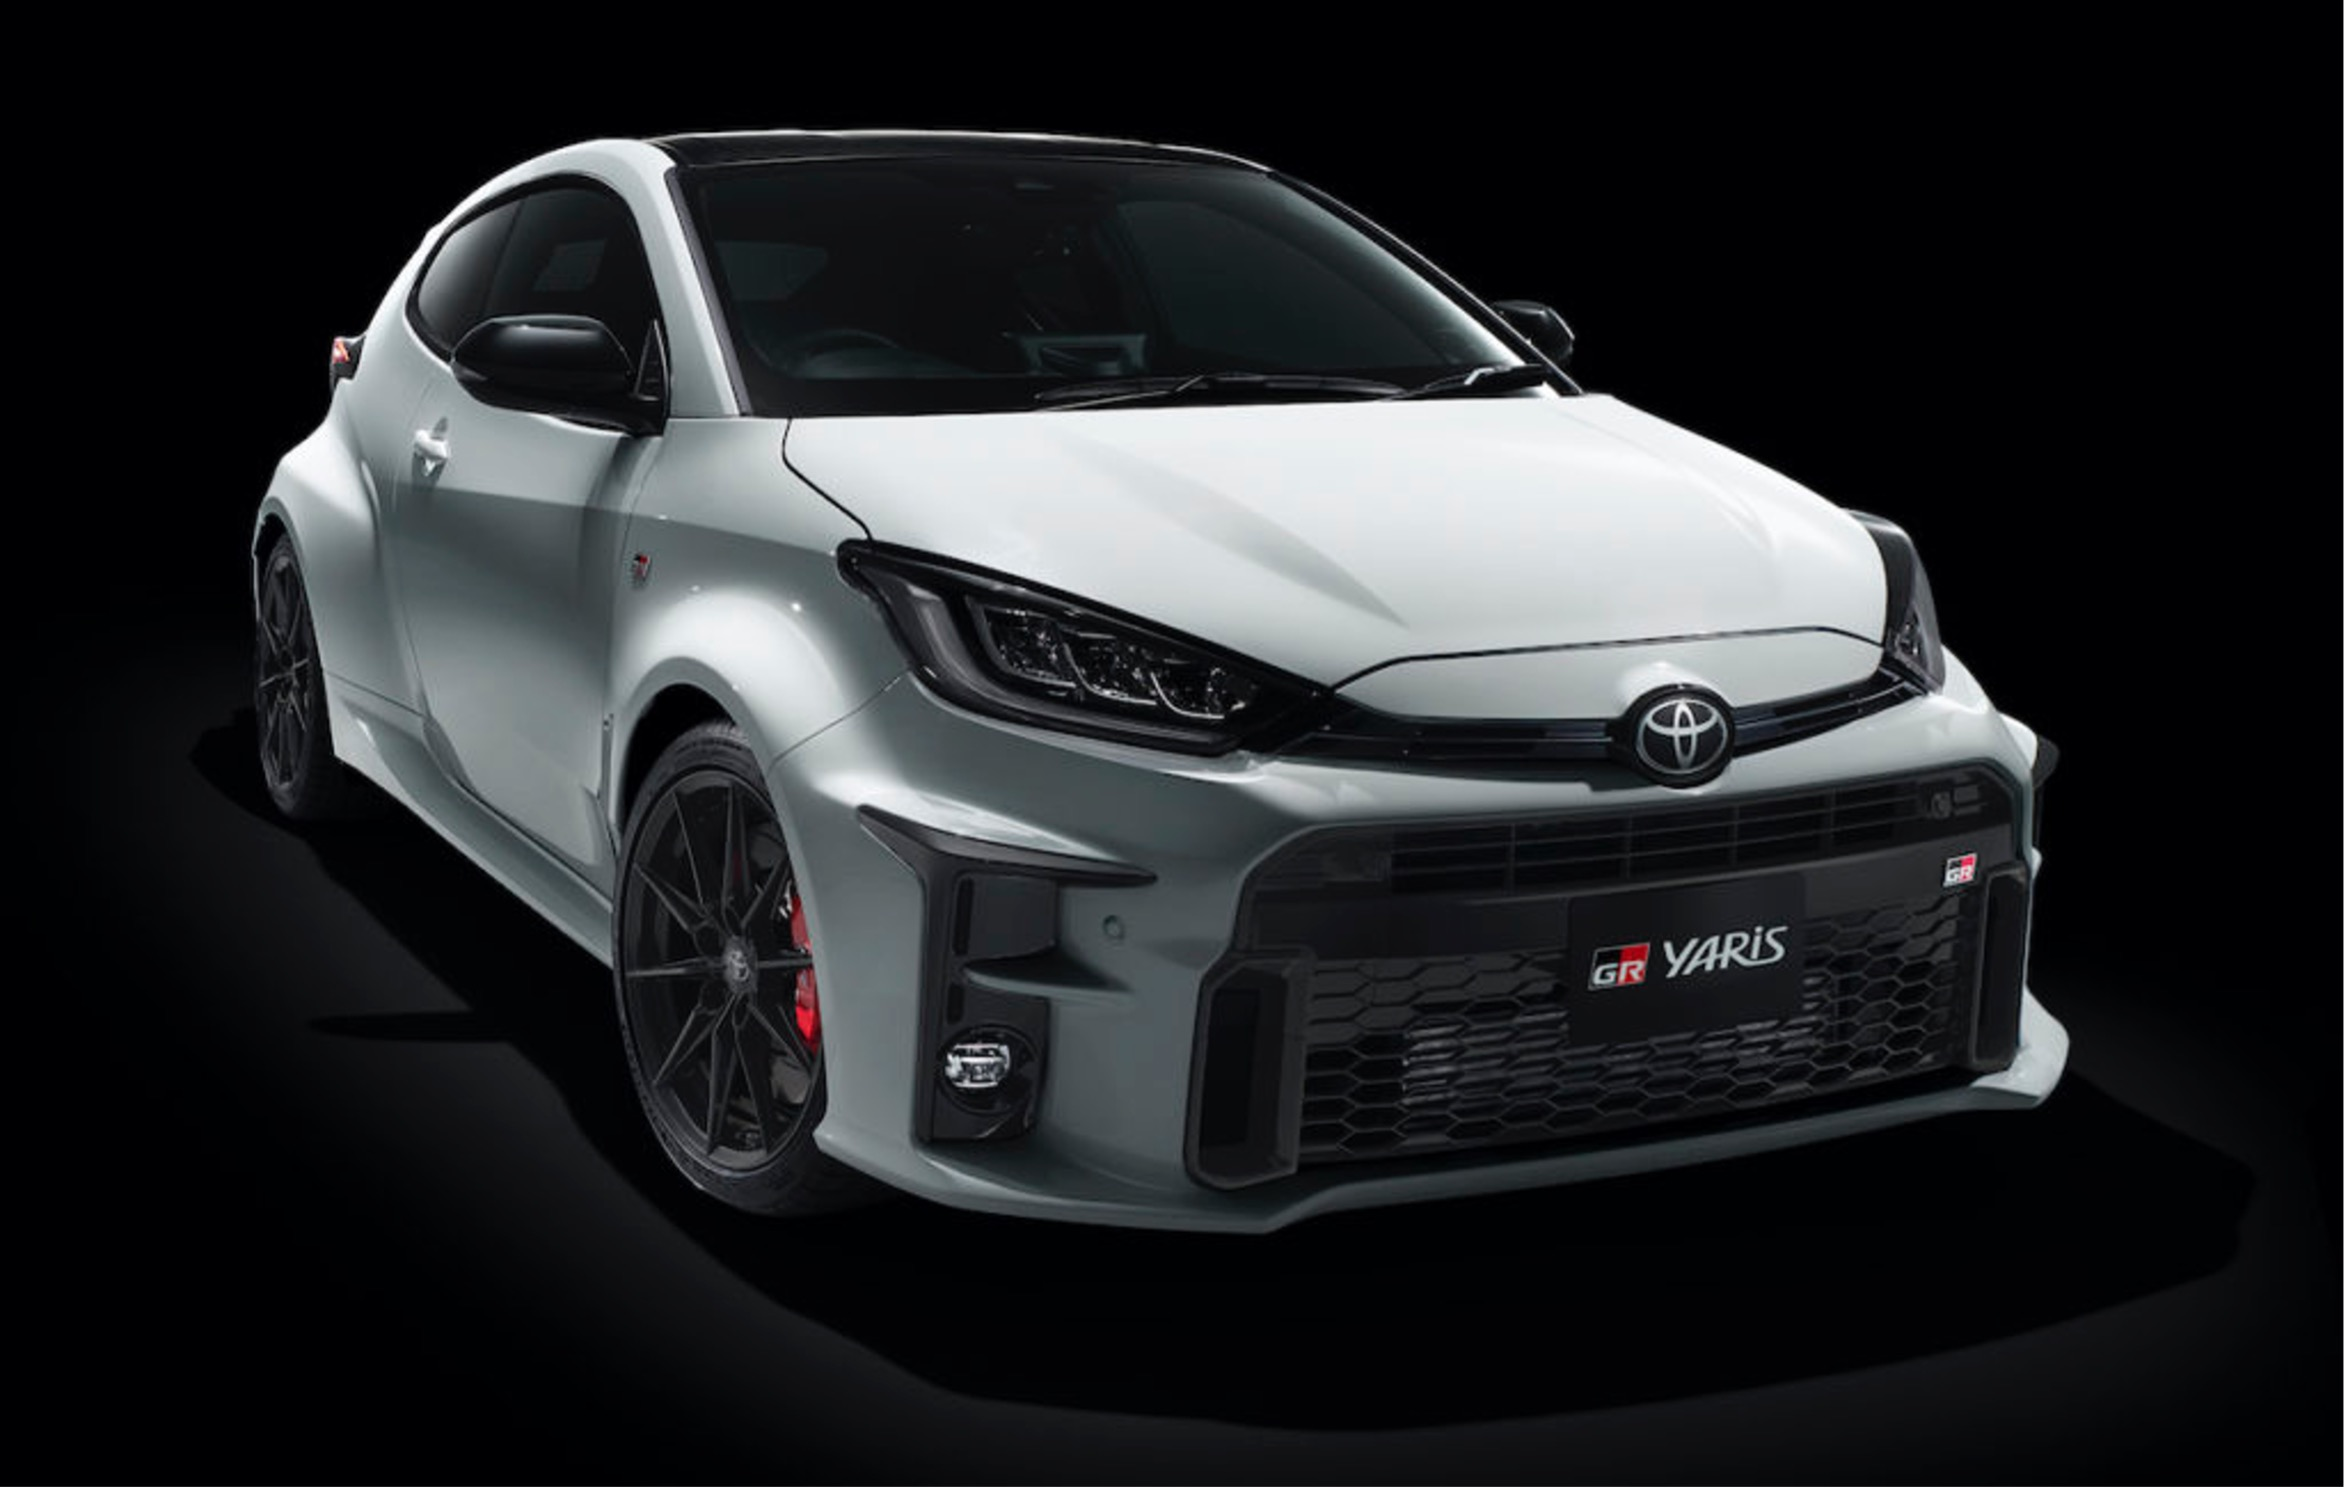 New car of Singapore in 2021 – Toyota GR Yaris